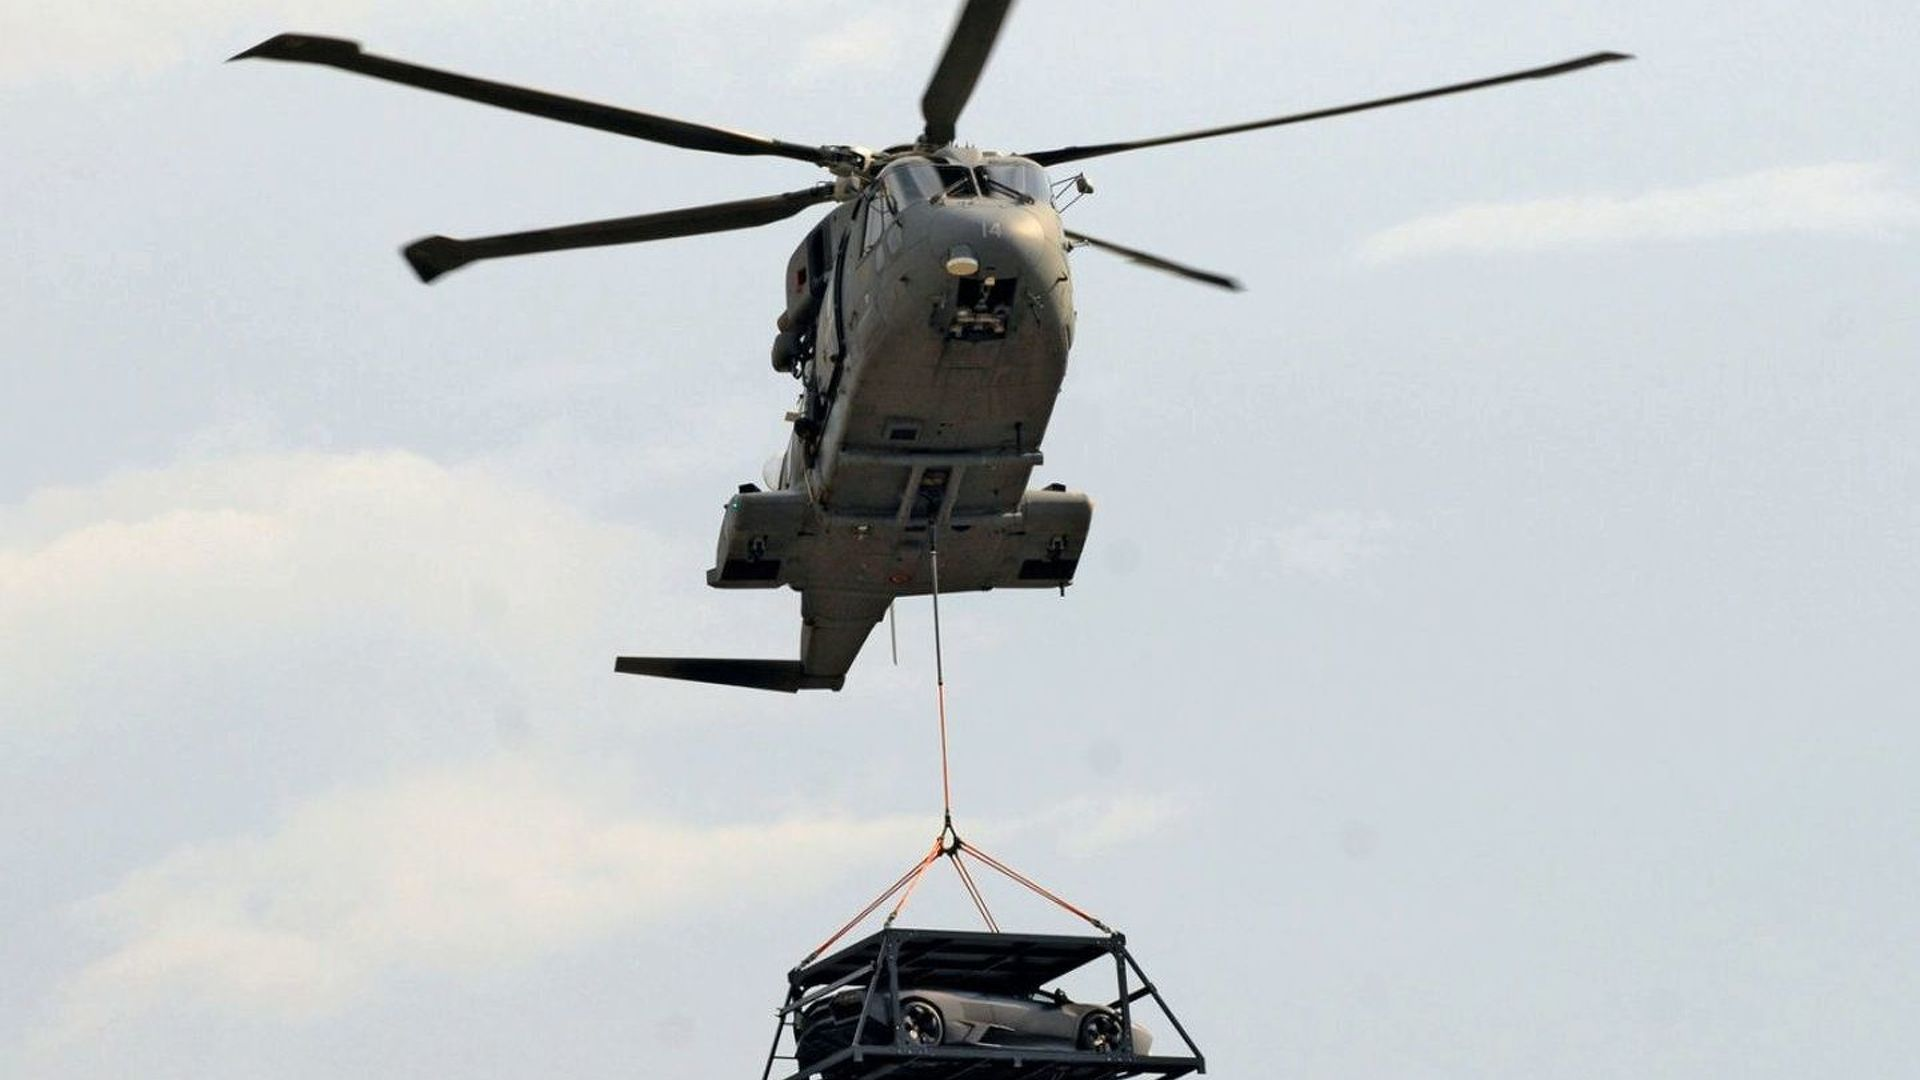 Lambo Reventon Flies Over Turin by Military Helicopter